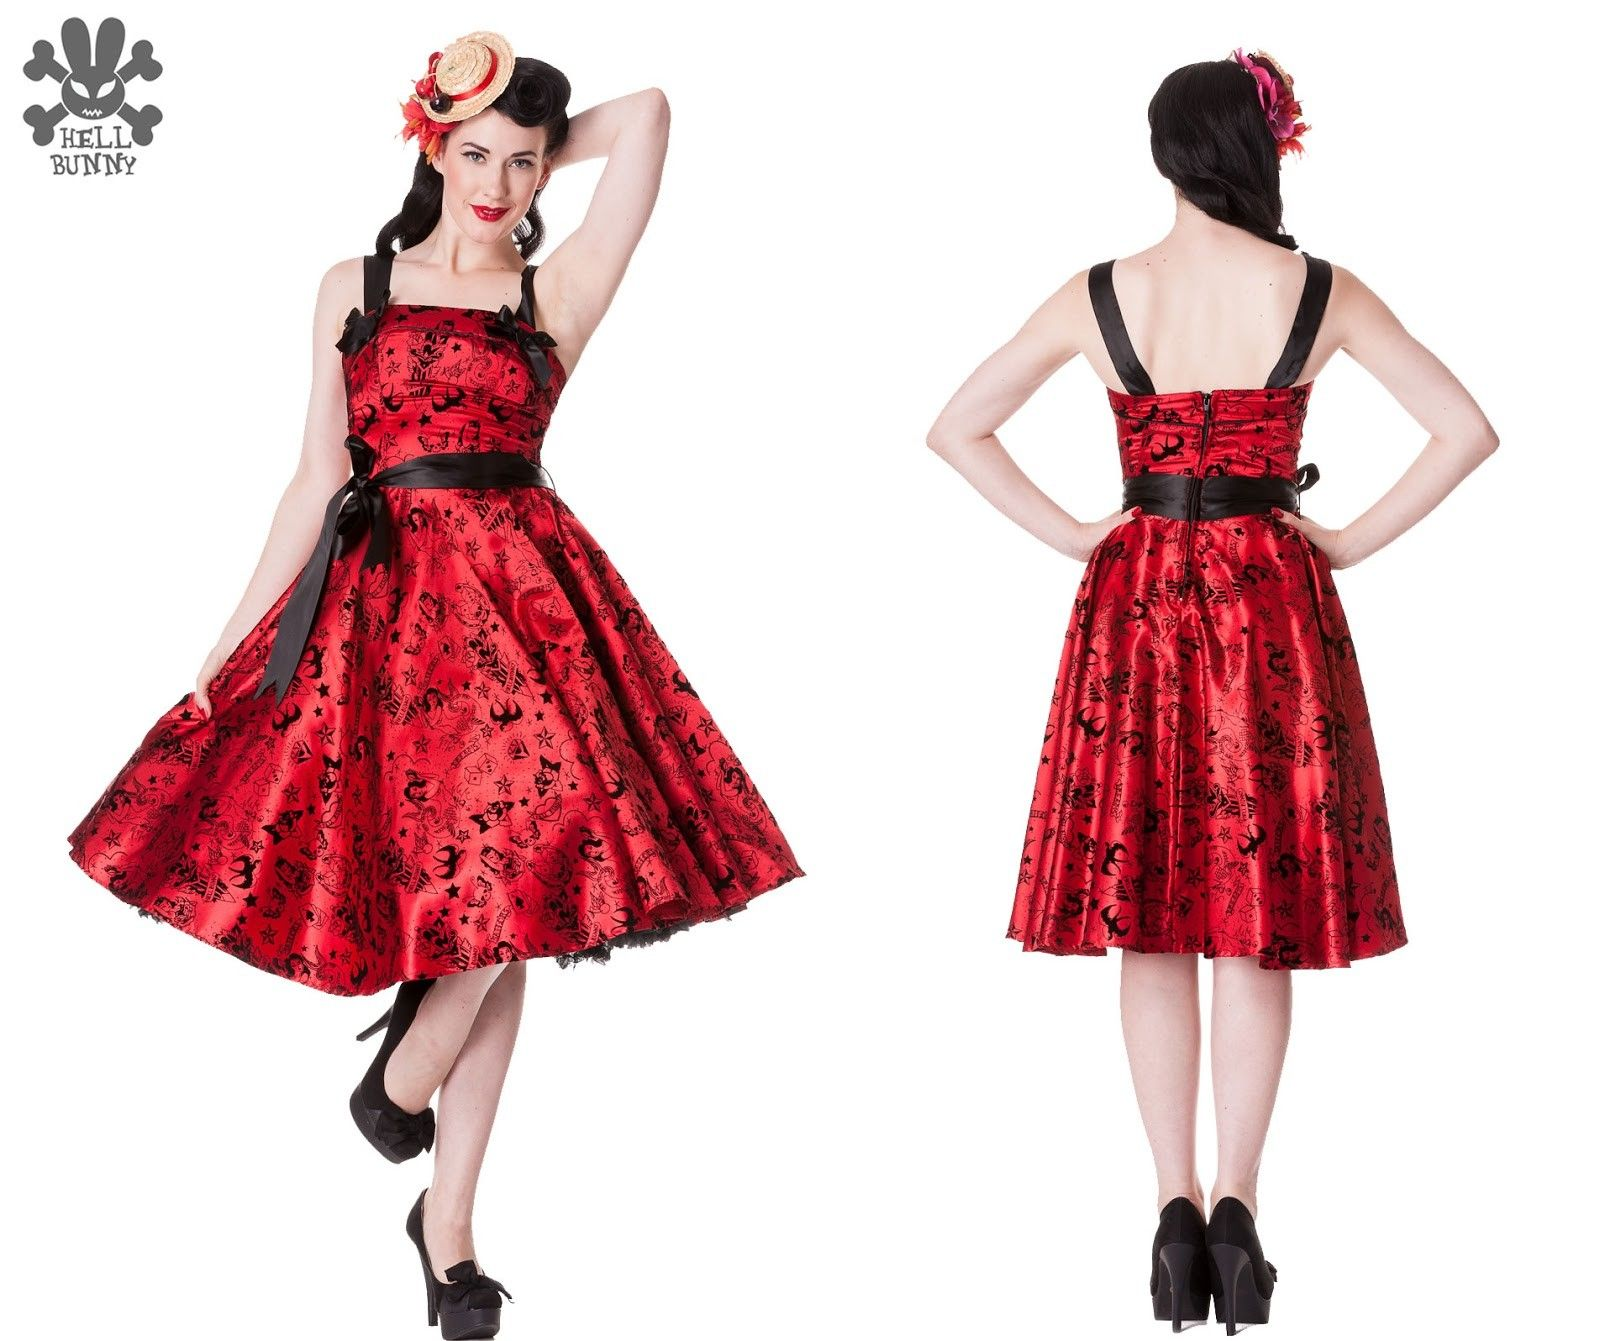 Hell Bunny red tattoo flock dress